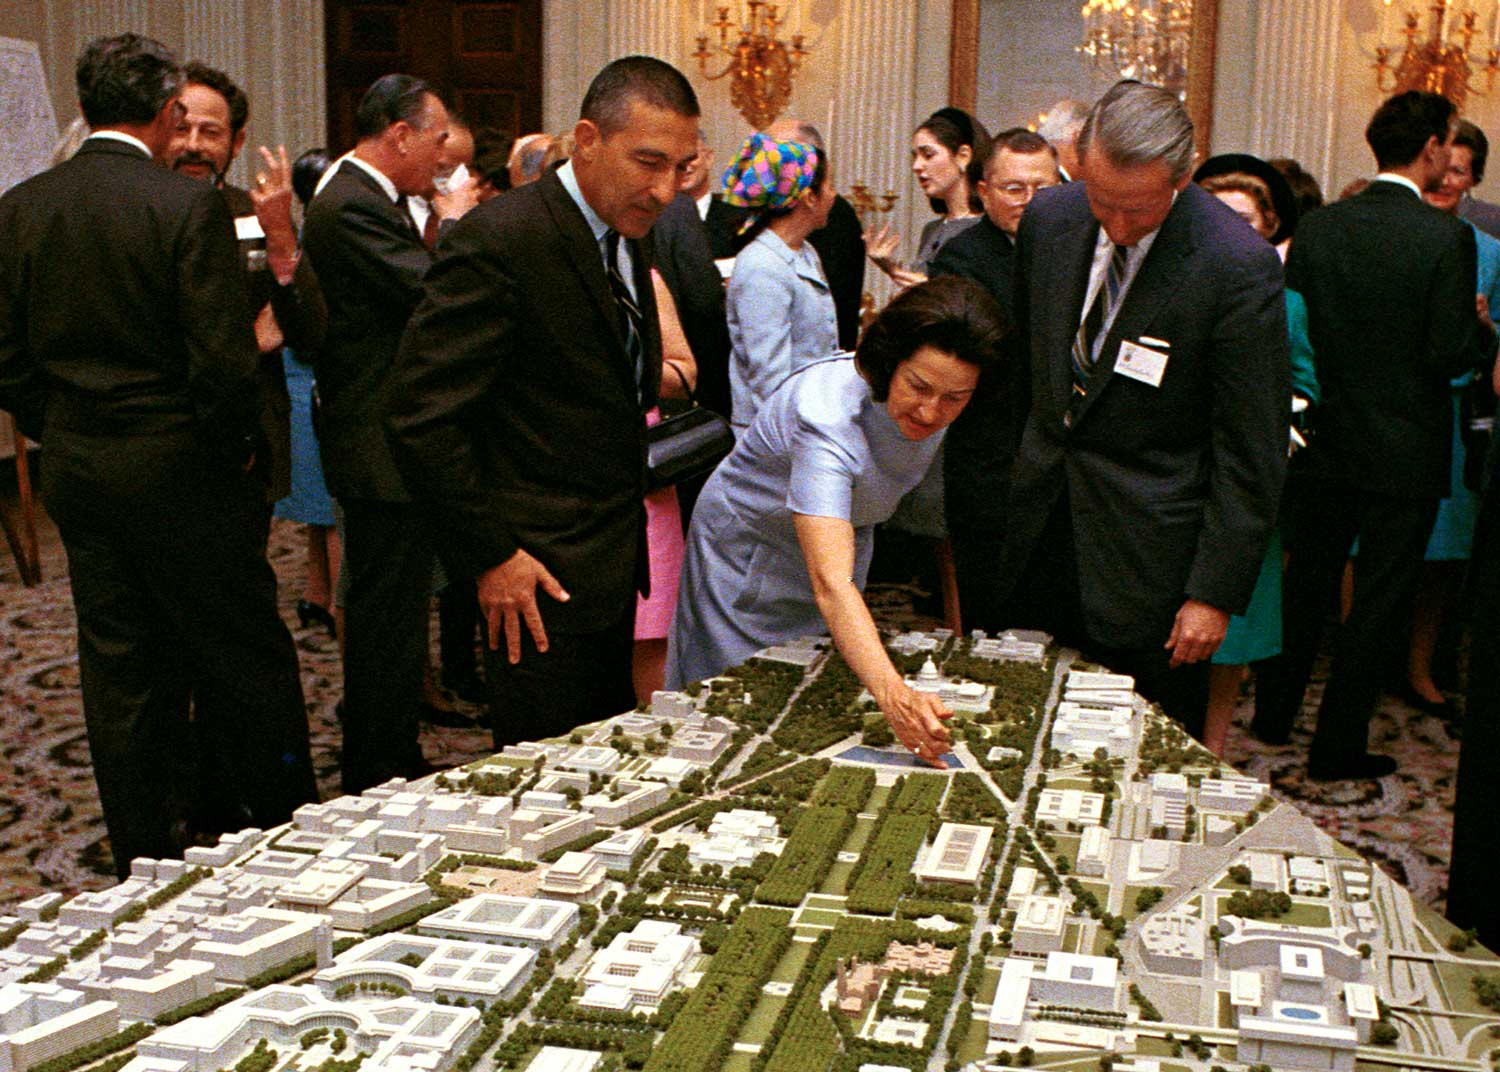 Foreground L-R: Sec. Stewart Udall, Lady Bird Johnson and Laurance Rockefeller look at an architectural model of the Washington, D.C. in 1967.LBJ Library photo by Robert Knudsen.